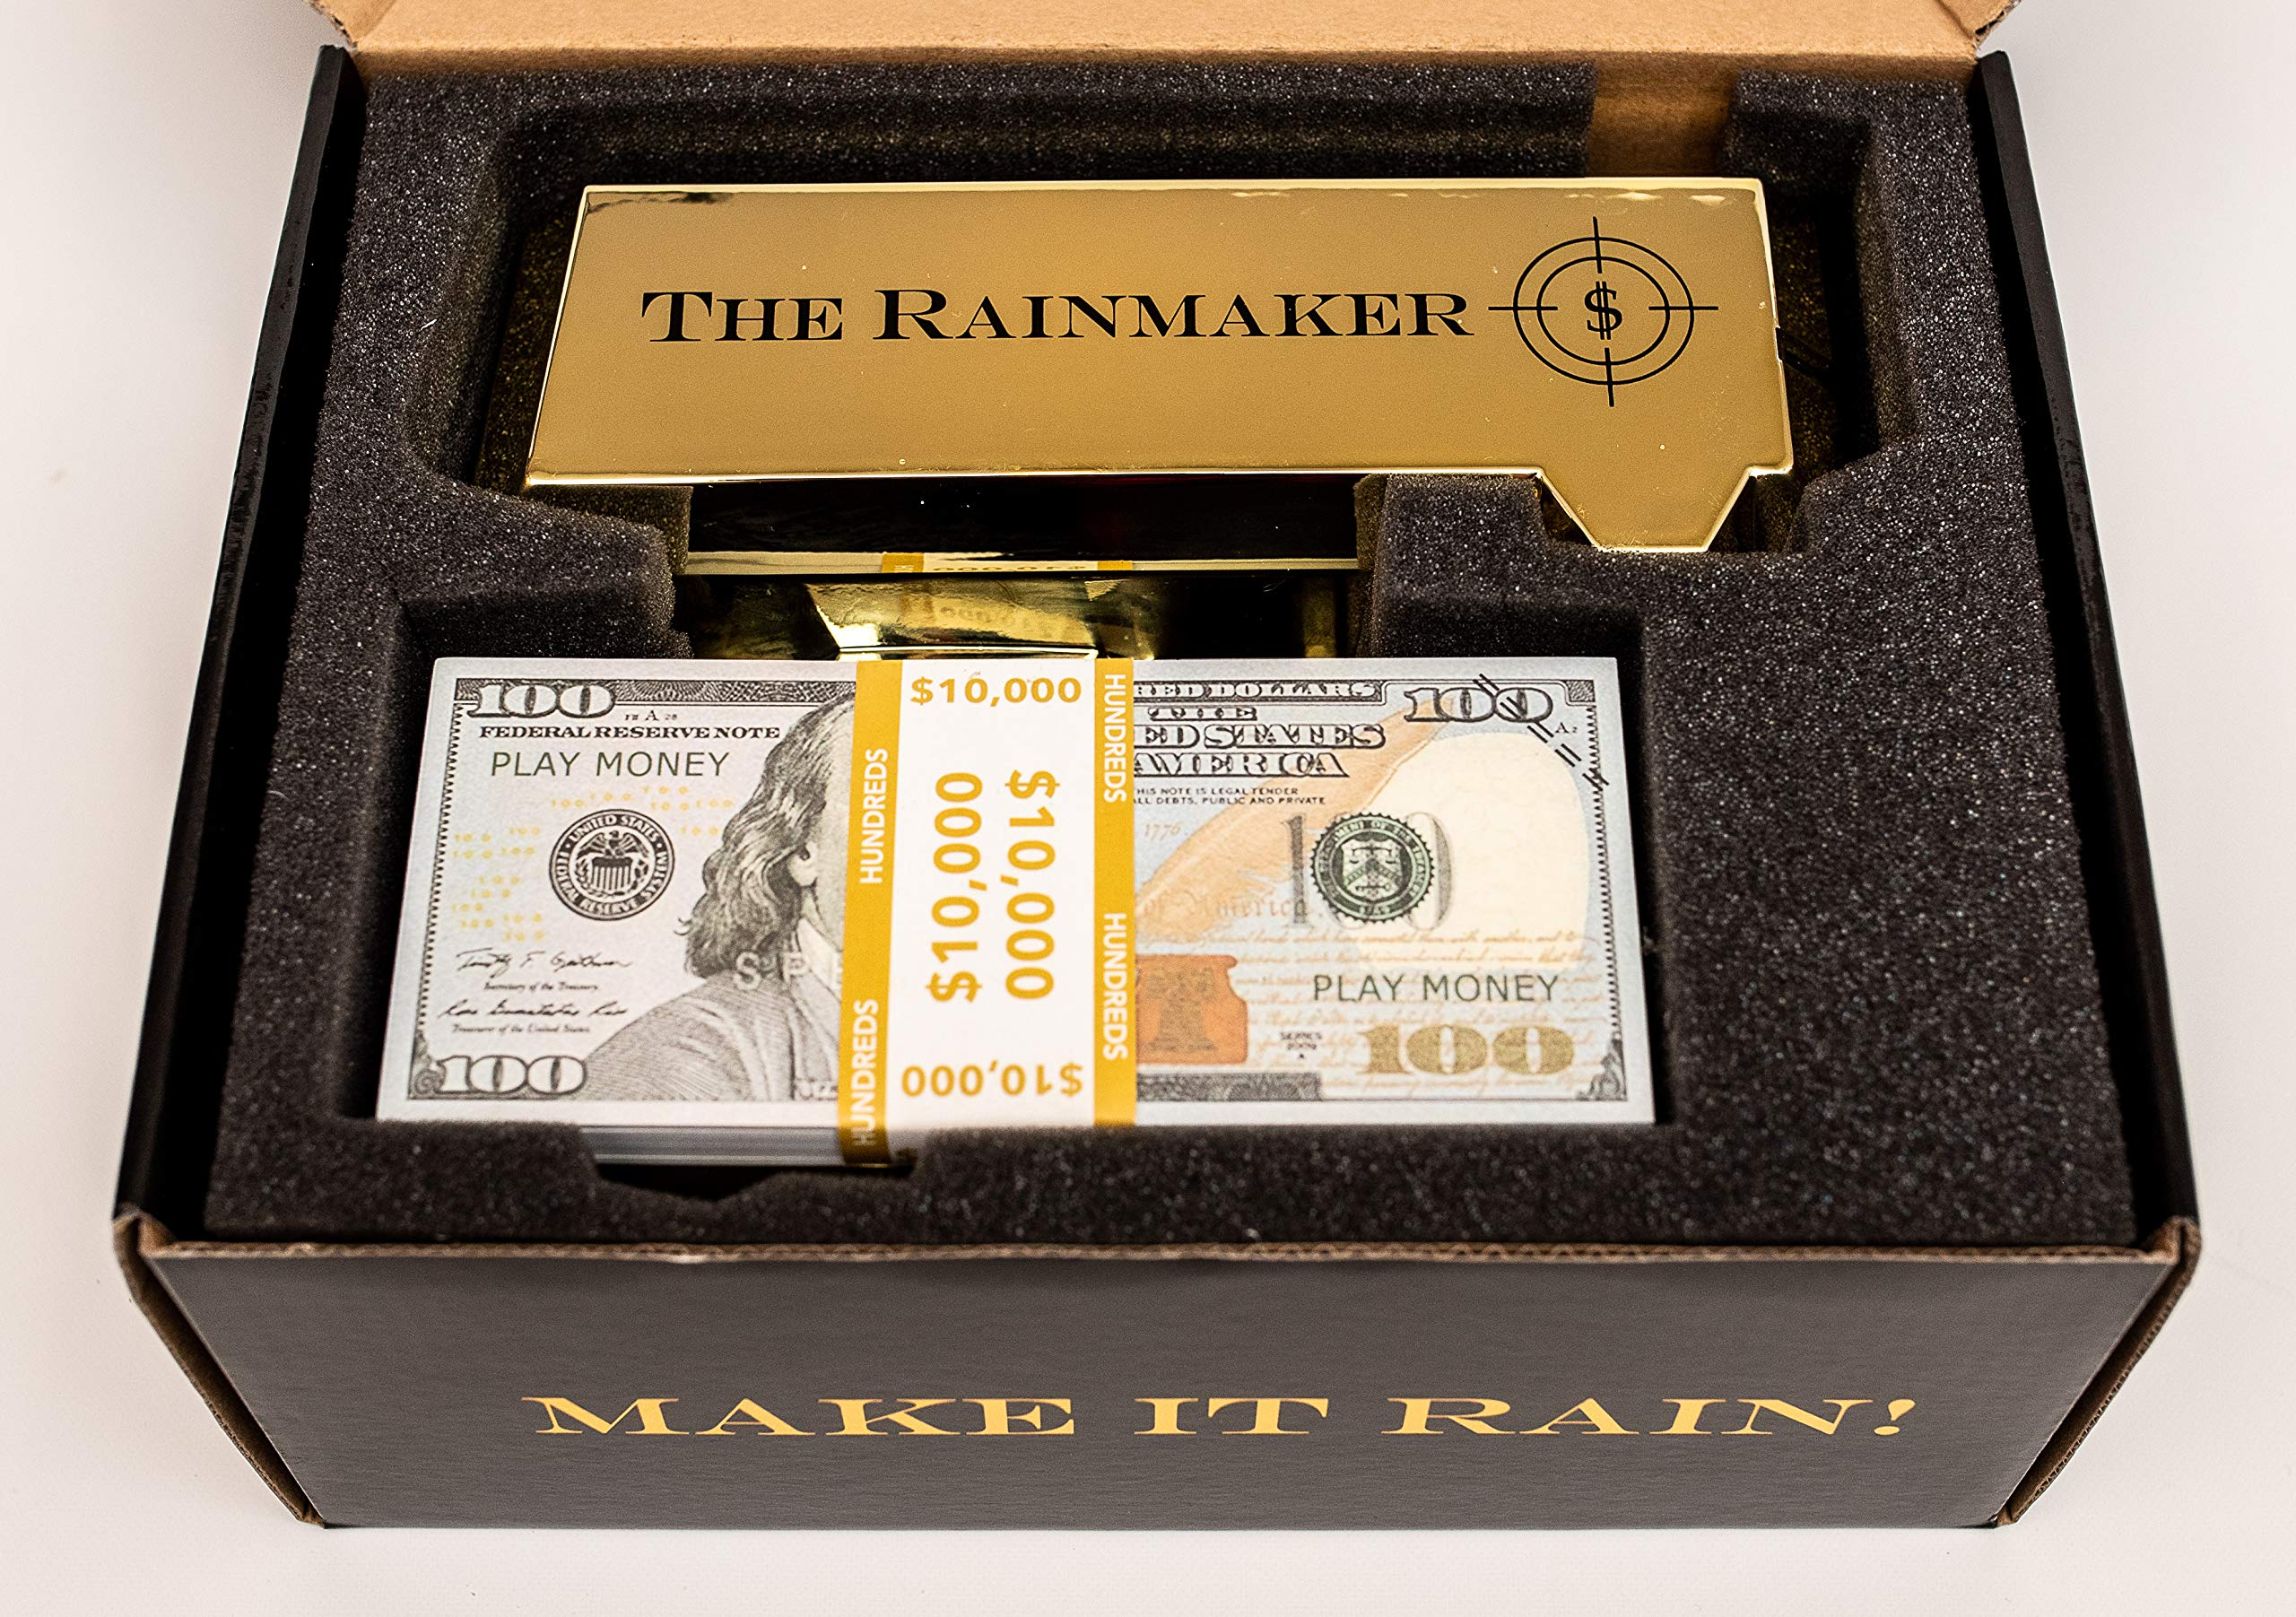 All Out Solutions The Rainmaker Money Gun | $10,000 Play Money | Money Looks Real! | Metallic Gold | Impress Your Friends with This Fun Party Toy | Shoot Cash and Make It Rain by All Out Solutions (Image #7)